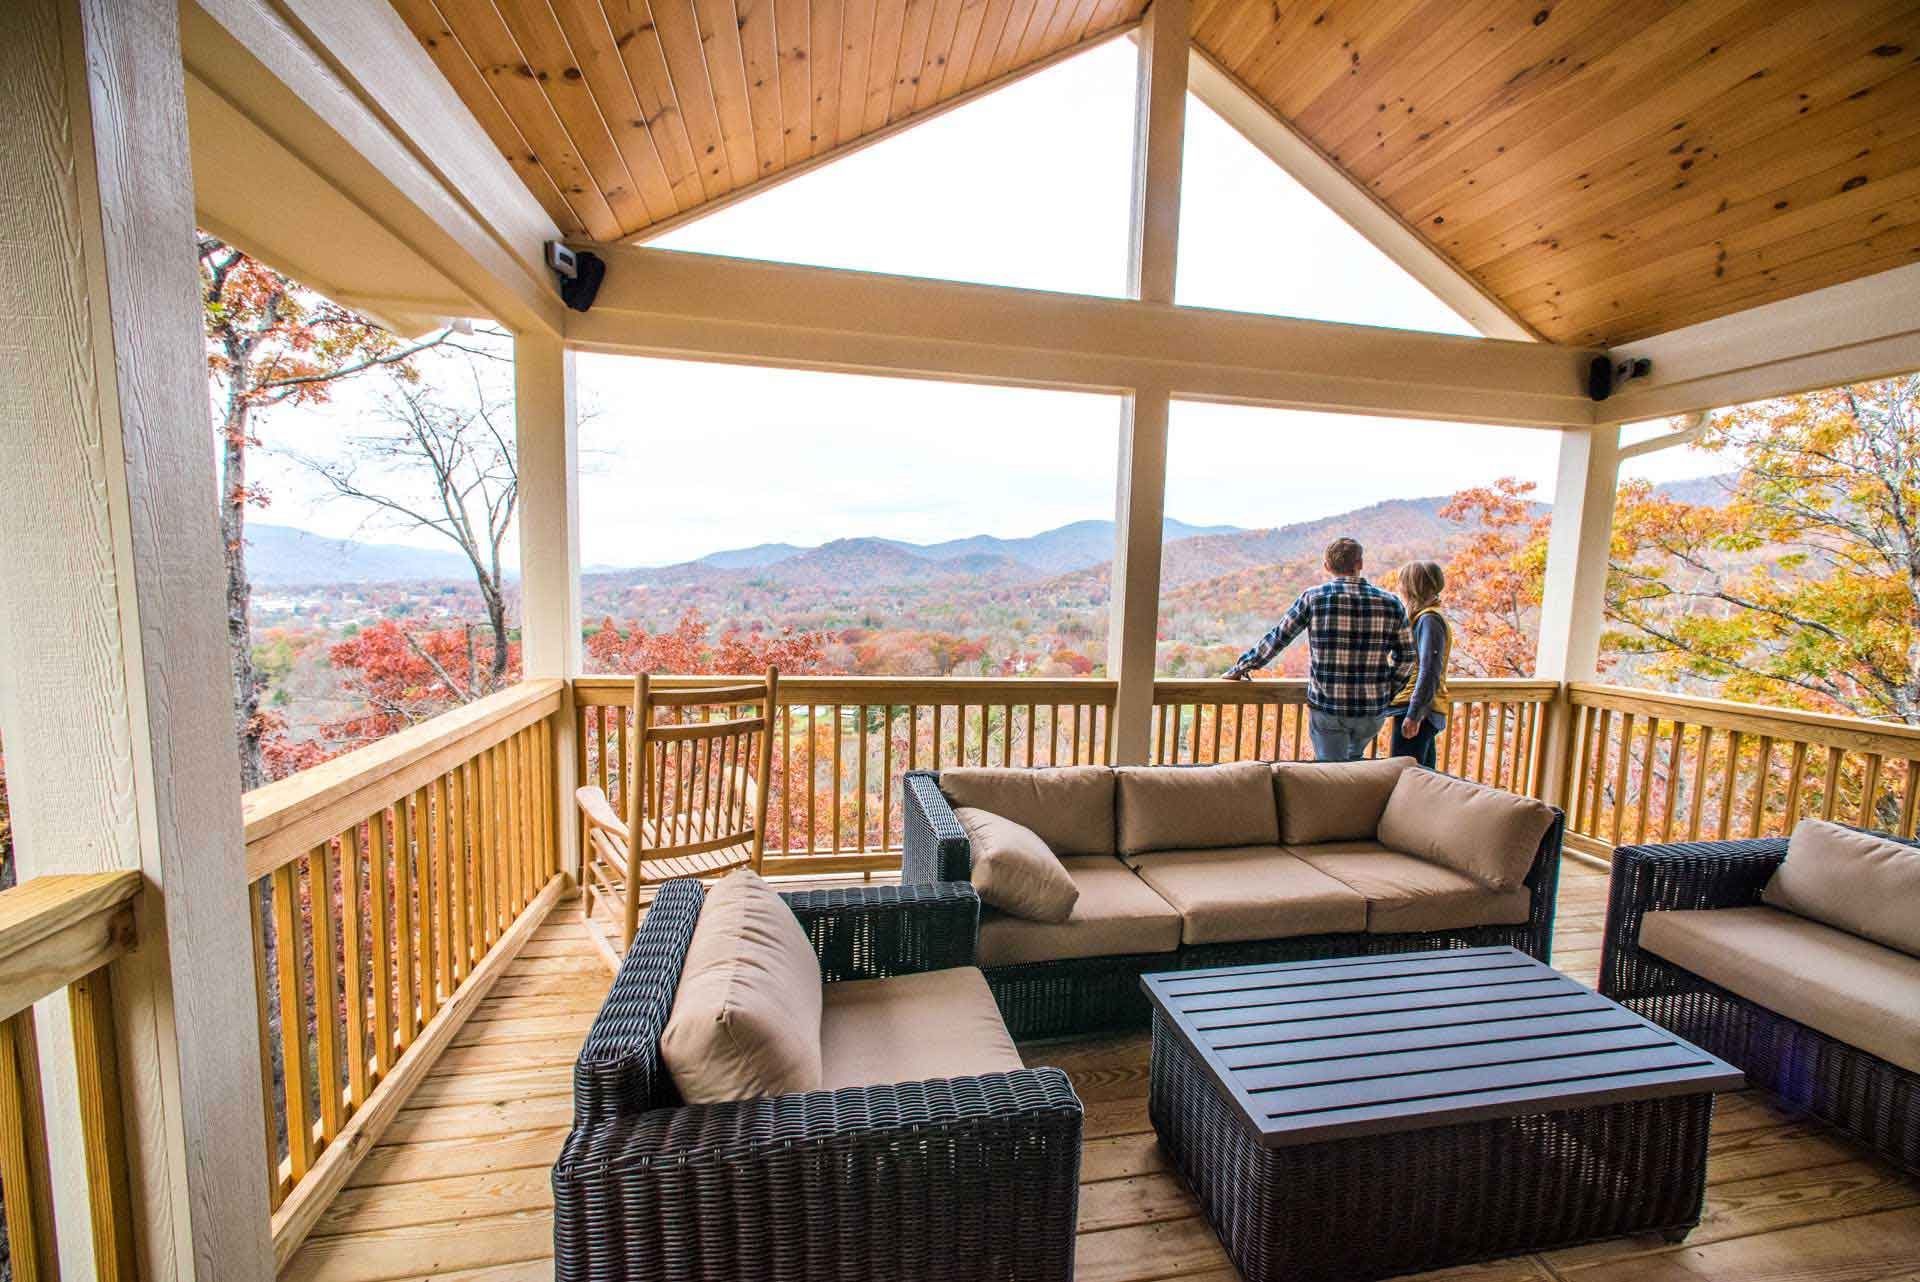 Plan The Perfect Honeymoon In An Asheville Cabin Rental